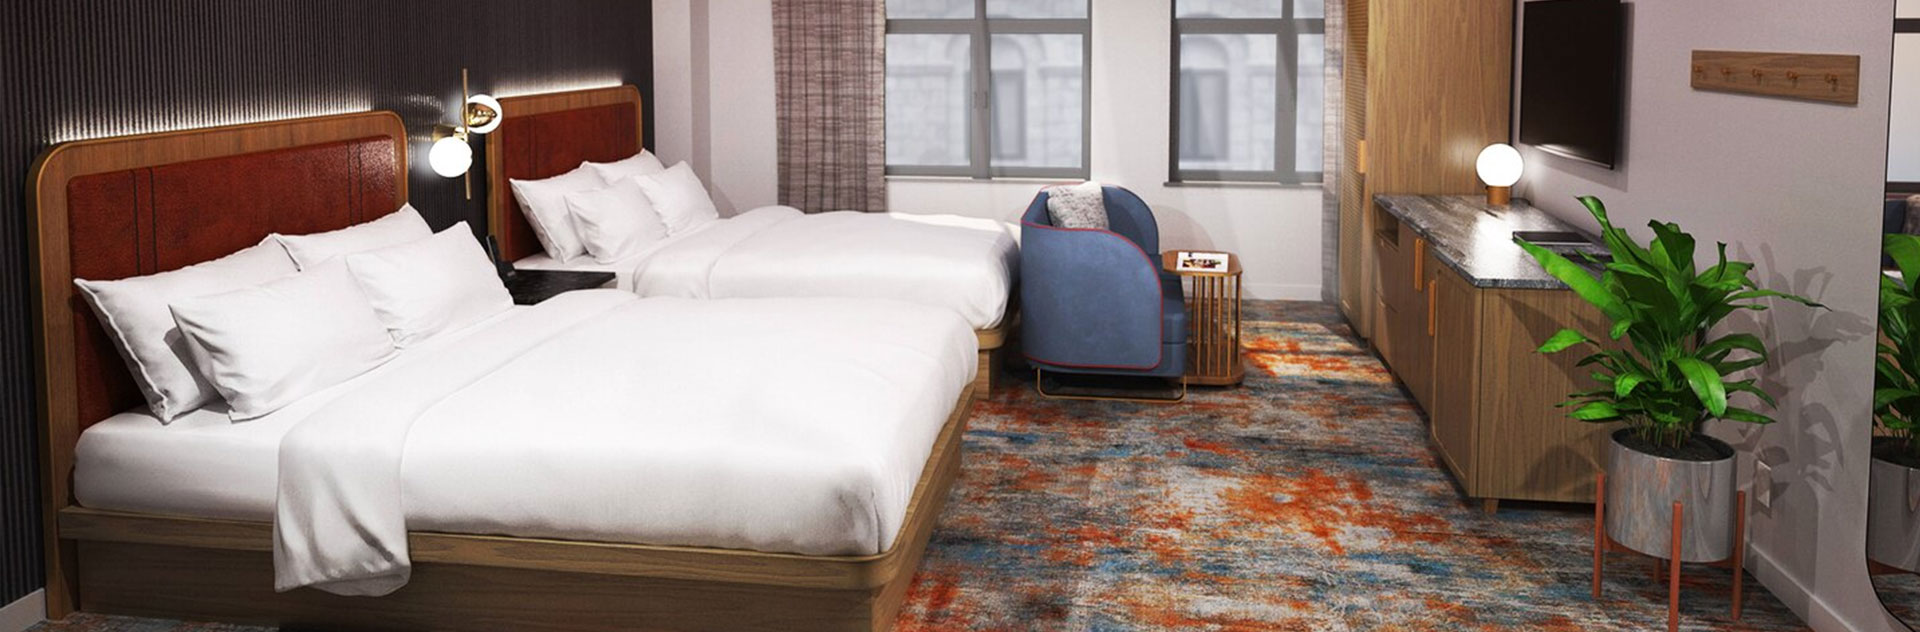 The industrialist hotel pittsburgh pennsylvania, Rooms